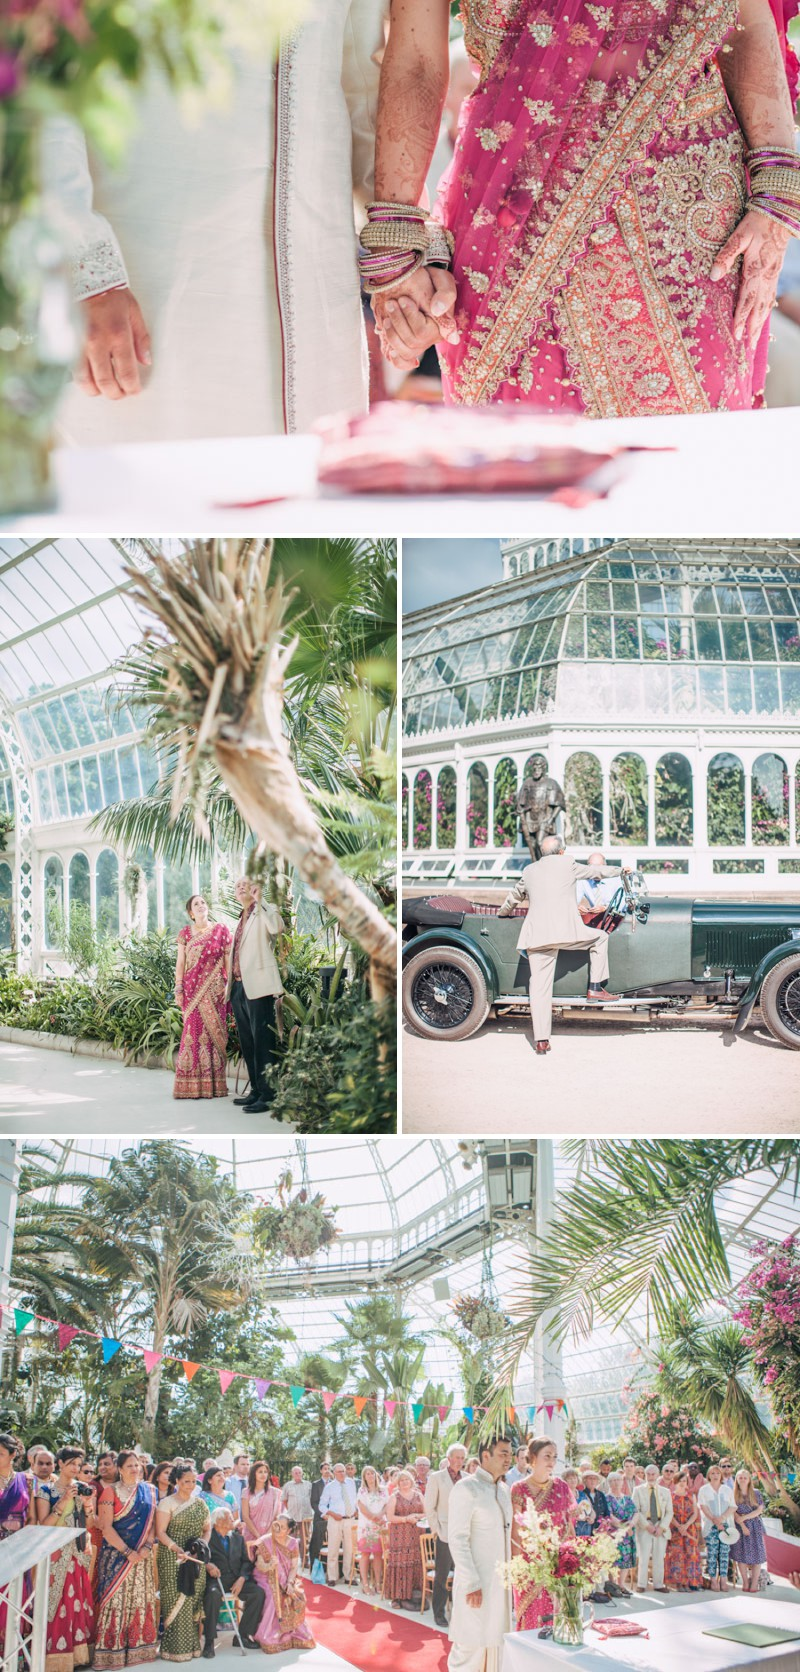 An Exotic Indian and English Fusion Wedding At Sefton Park Palm House In Liverpool With A Beautiful Vintage Lagonda And A Pink Handpicked Bouquet By Wookie Photography._0005